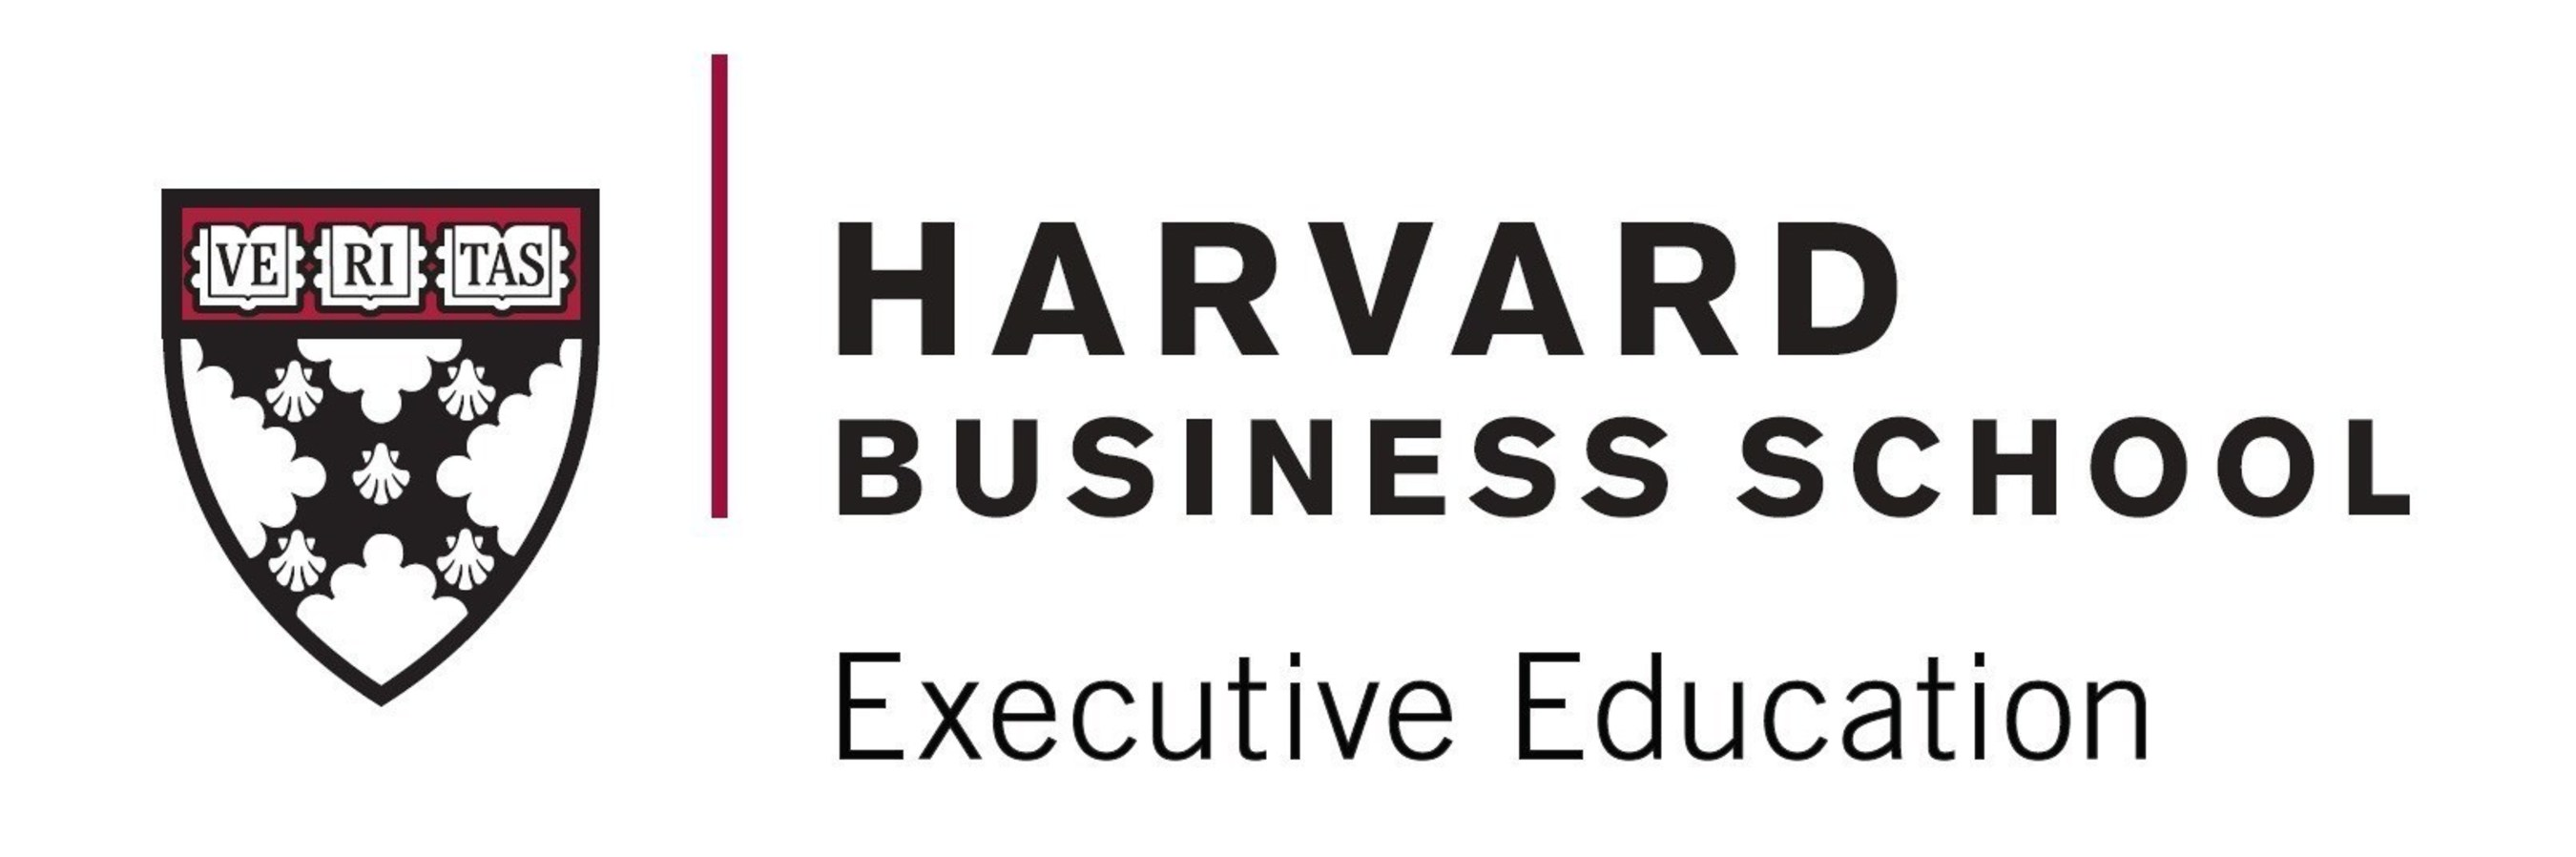 Harvard Business School Executive Education To Host Global